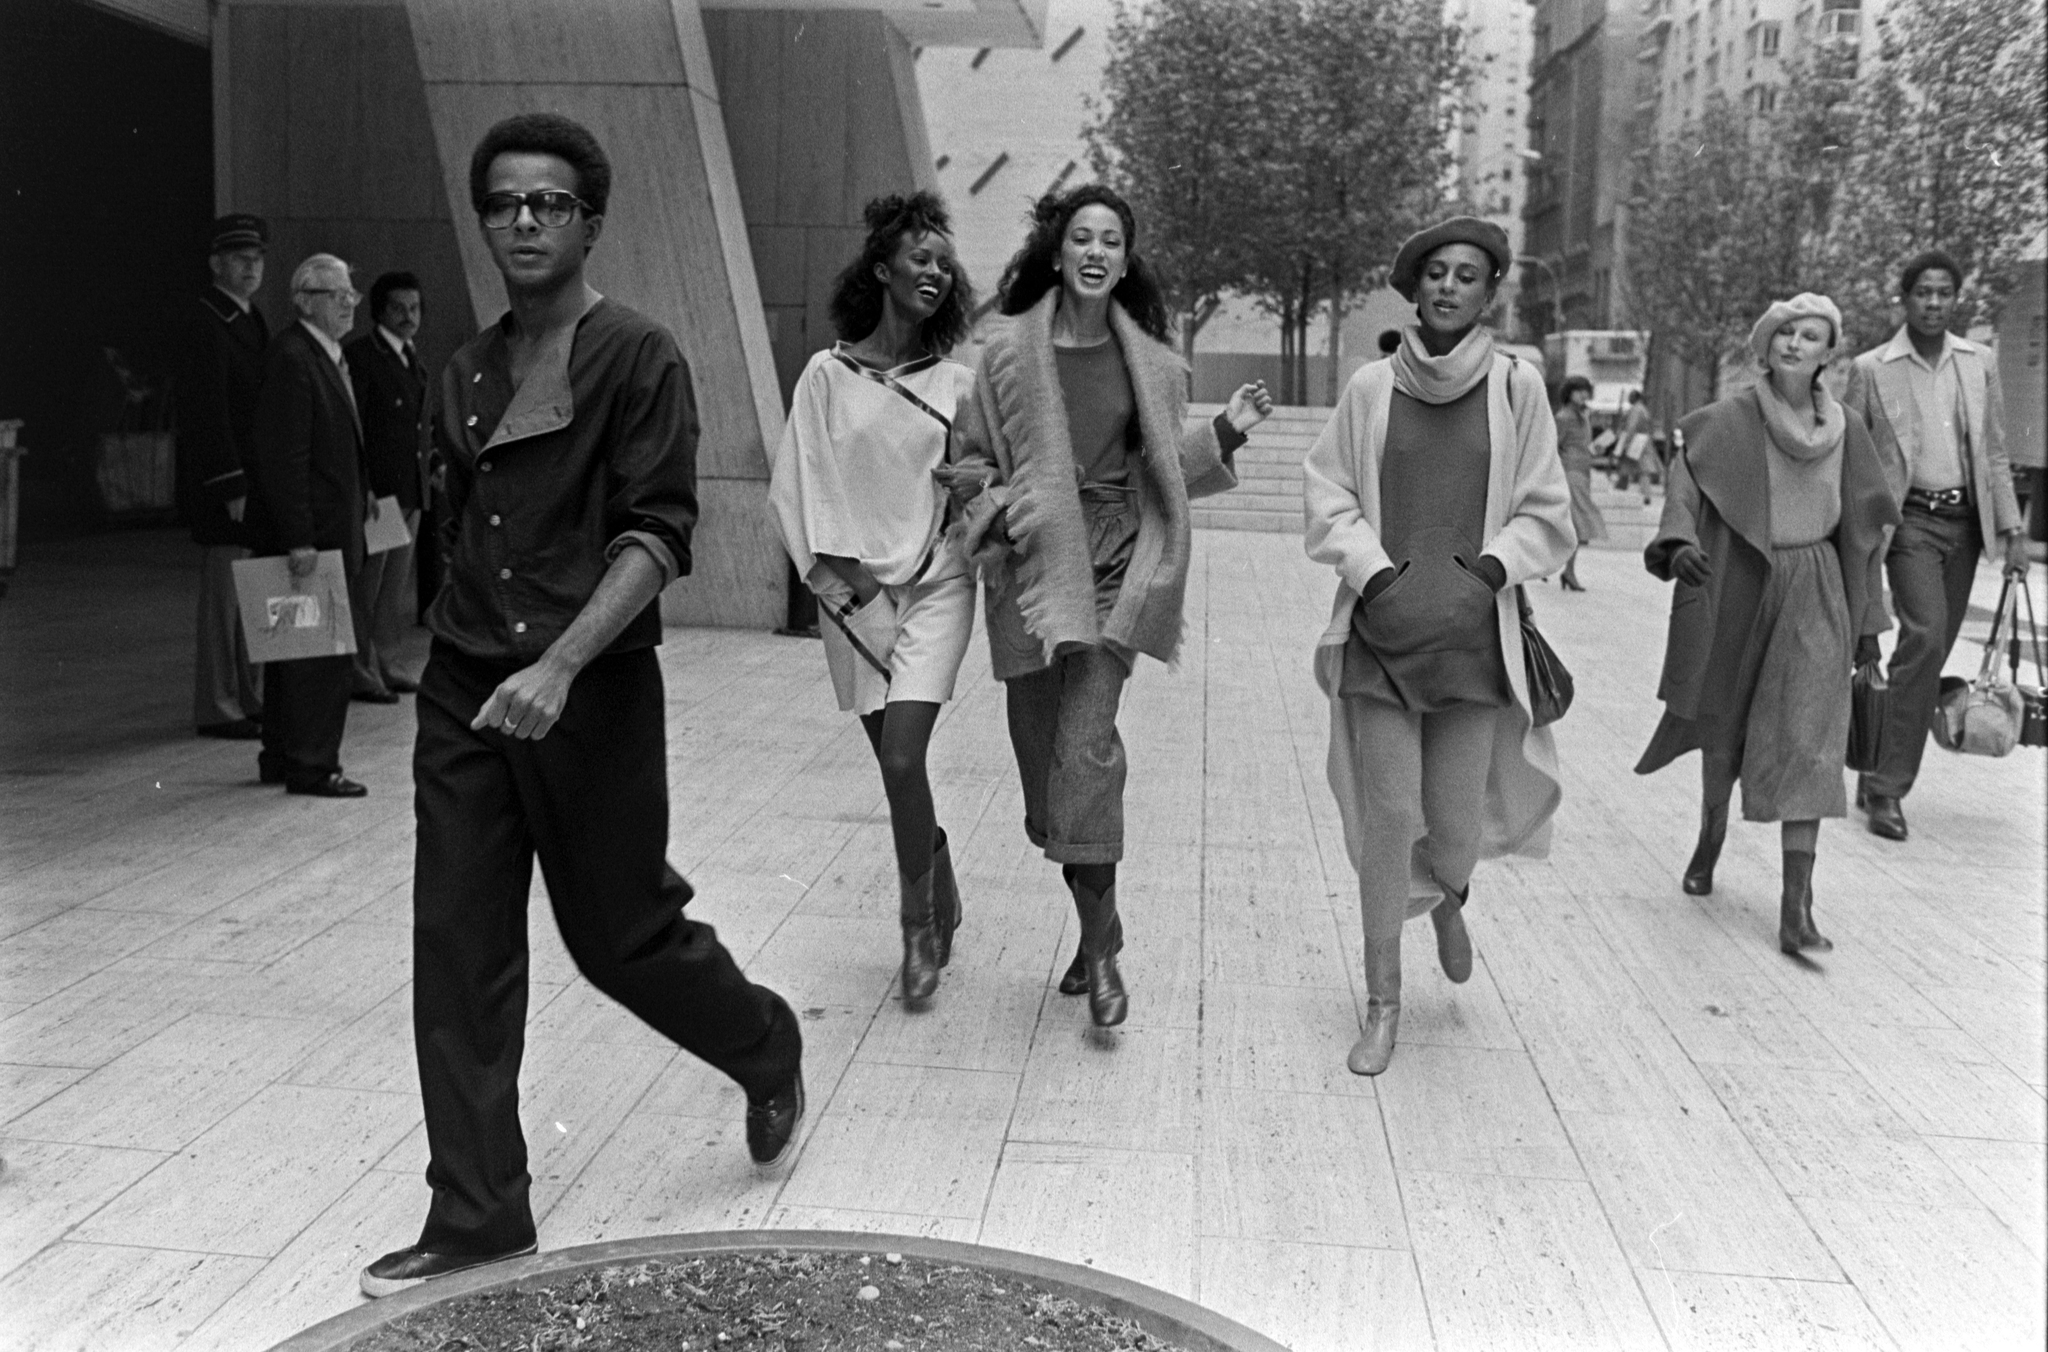 Designer Stephen Burrows journalist Andre Leon Talley and models in looks from Stephen Burrows   Fall 1977 Ready to Wear Advance.